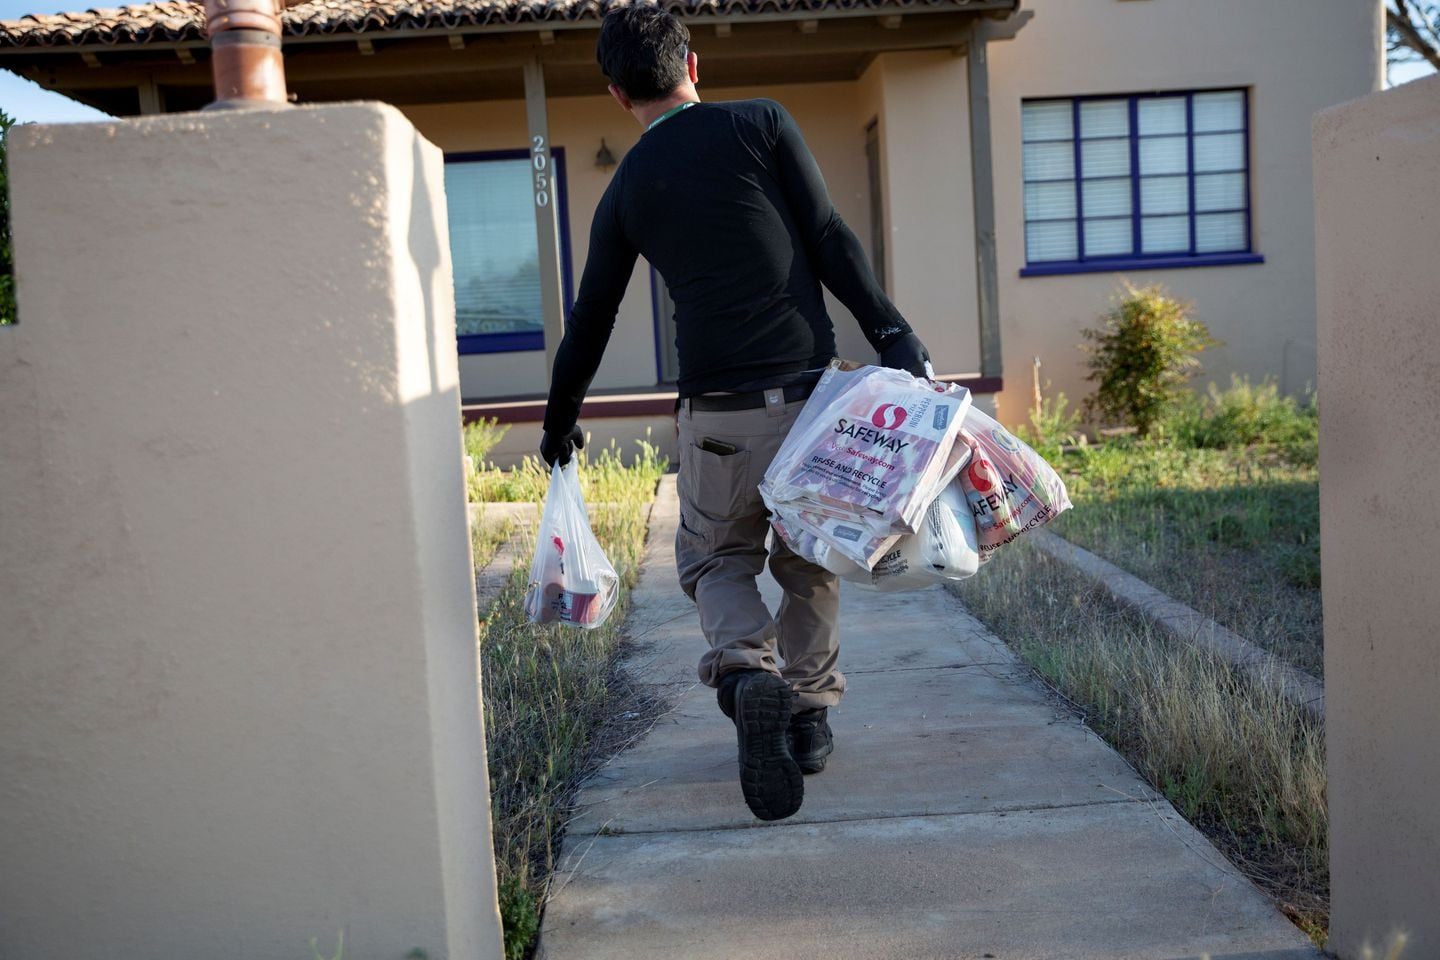 Grocery delivery was supposed to be the ultimate pandemic lifeline. But it's falling short.